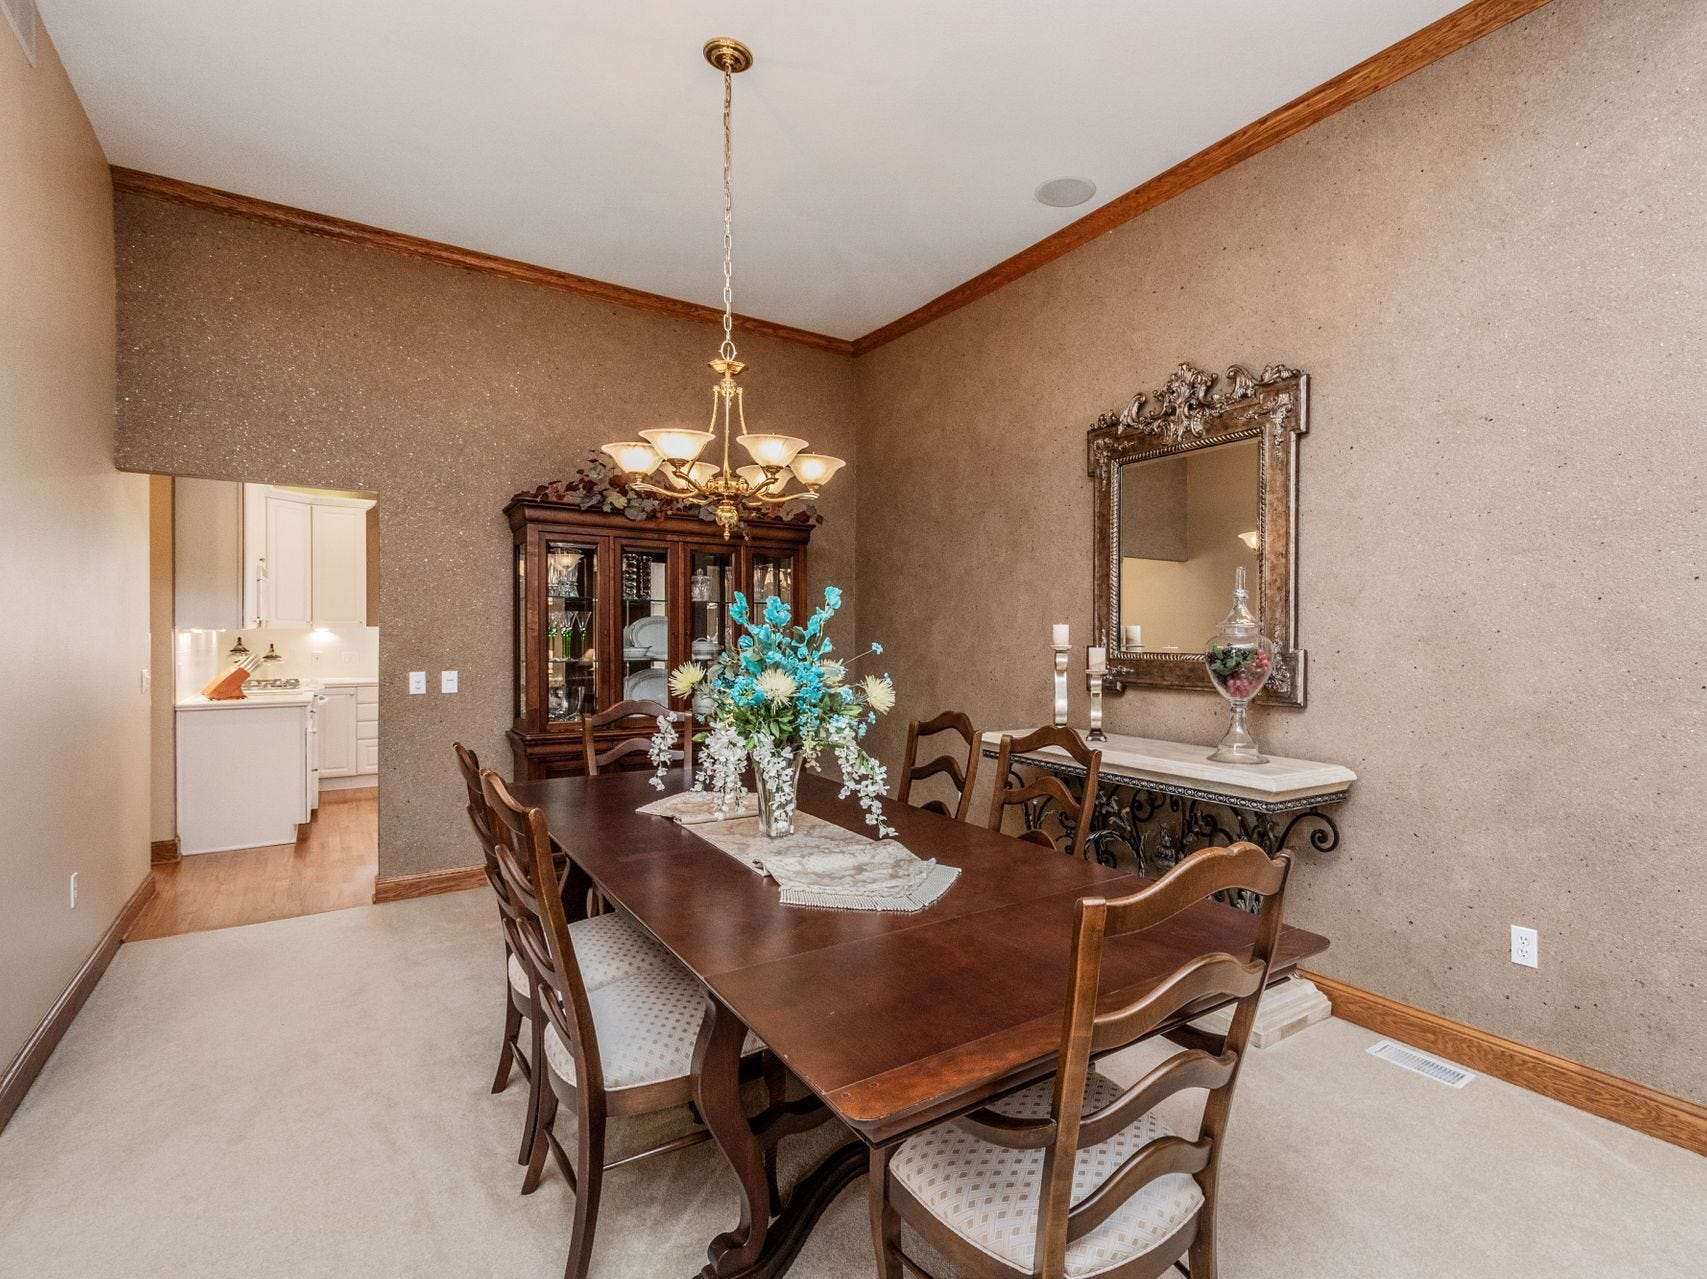 This executive walkout ranch in Johnston has 4,800 square feet of living space.